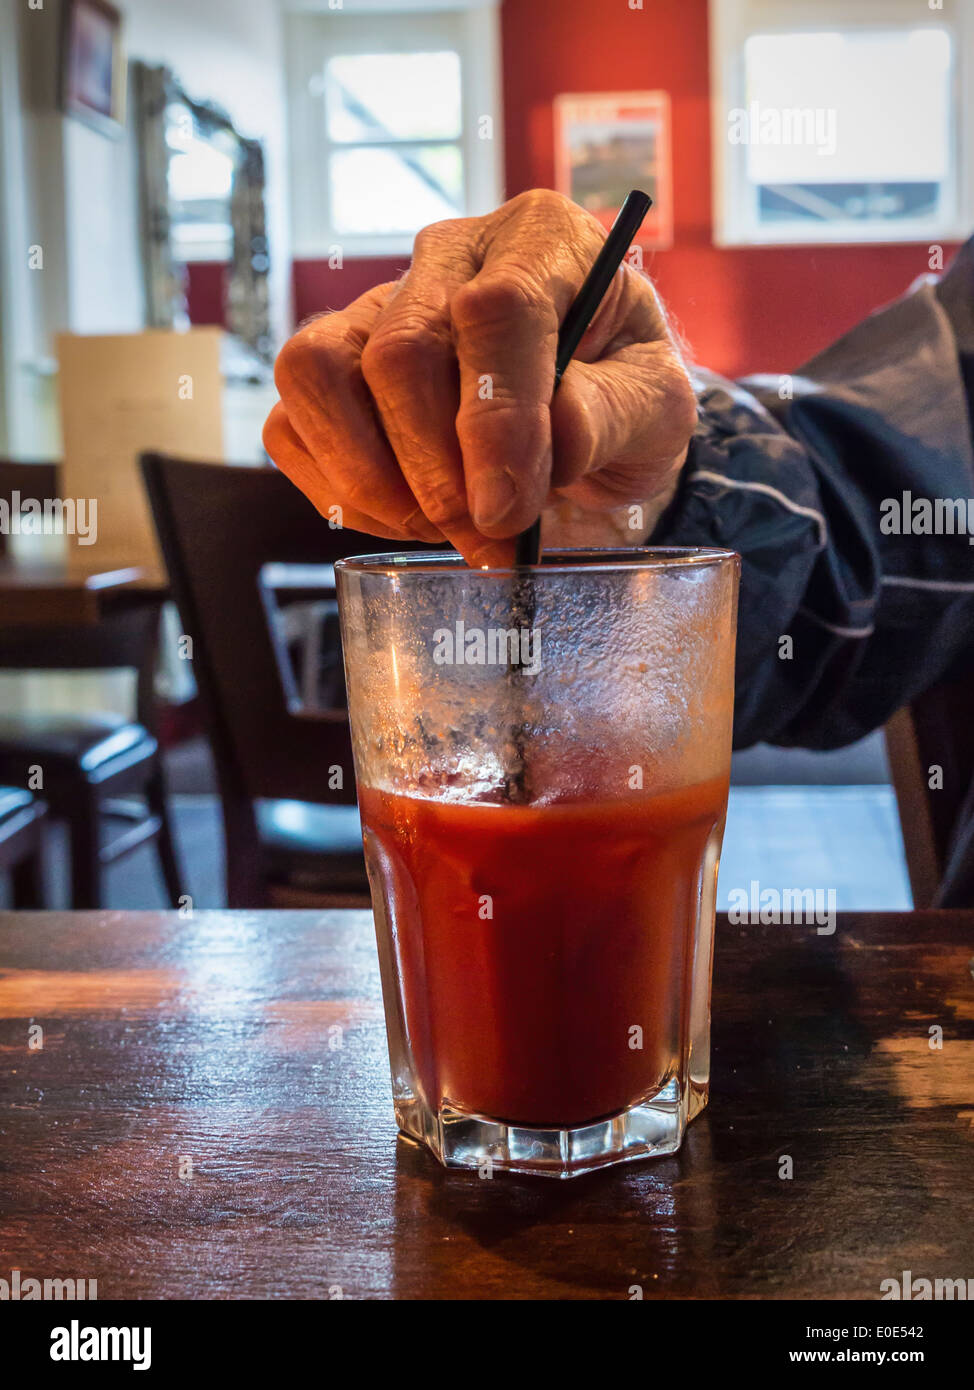 Hand stirring half full glass of tomato juice with a straw - Stock Image